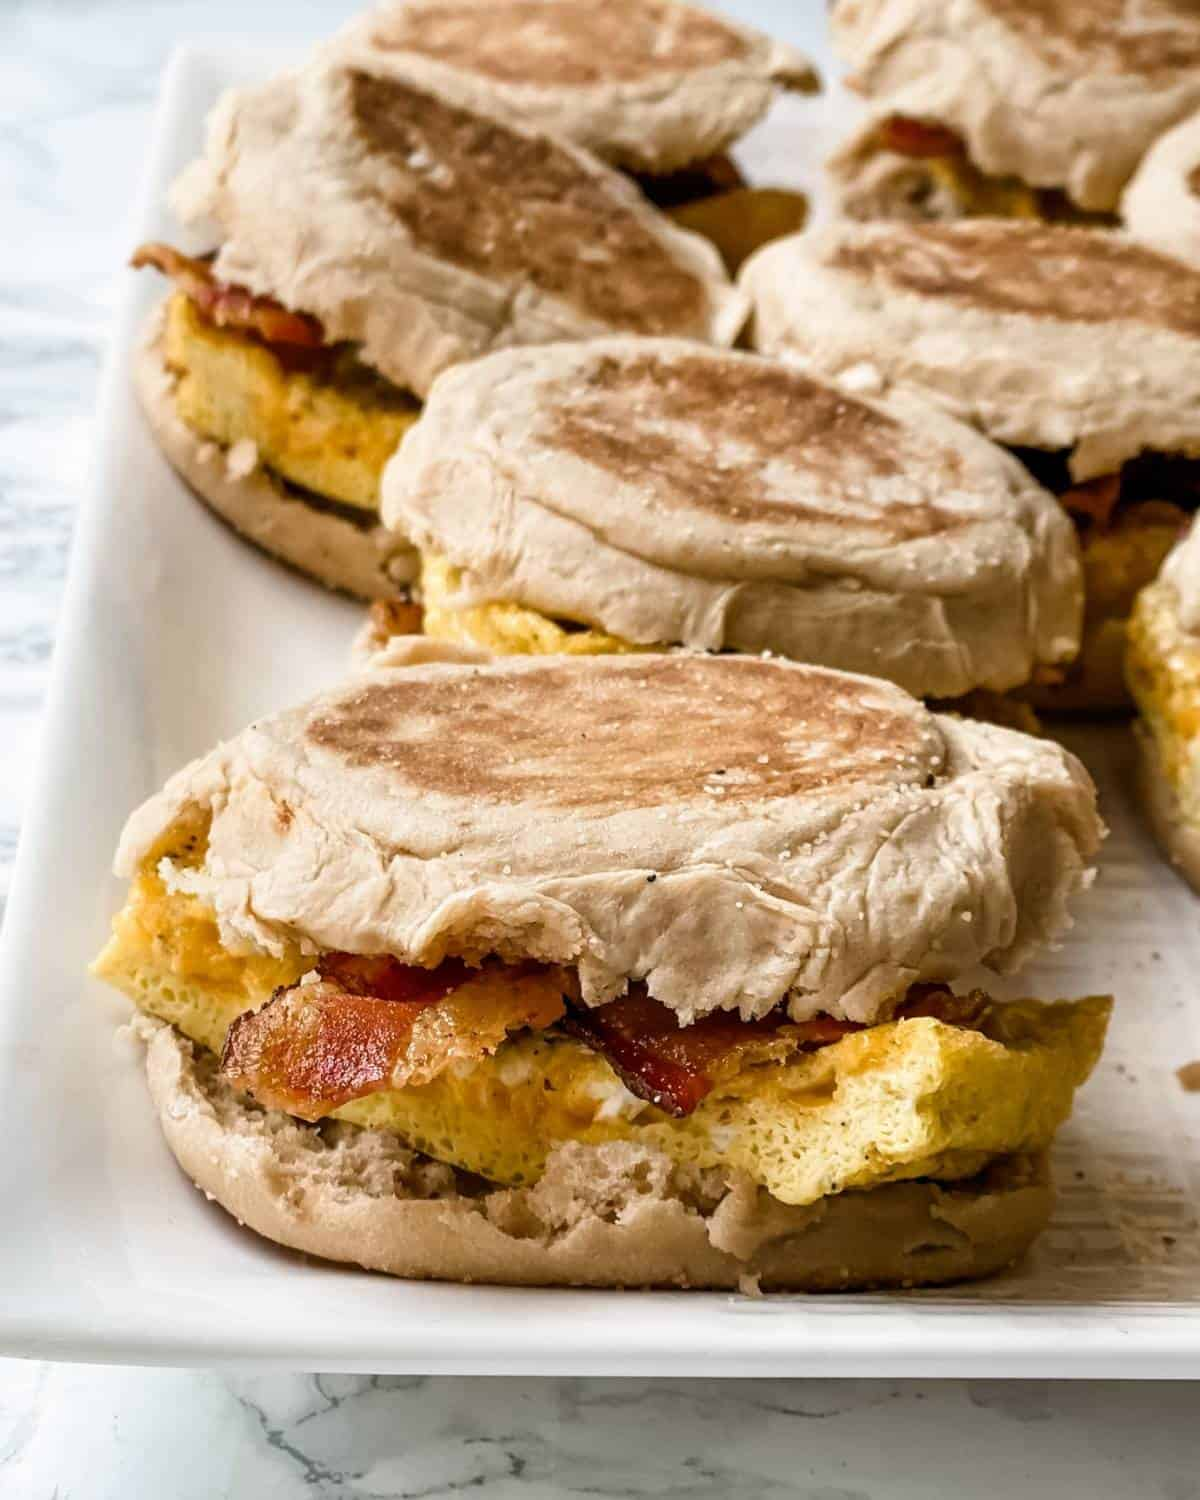 bacon, egg, and cheese on an English muffin breakfast sandwich.